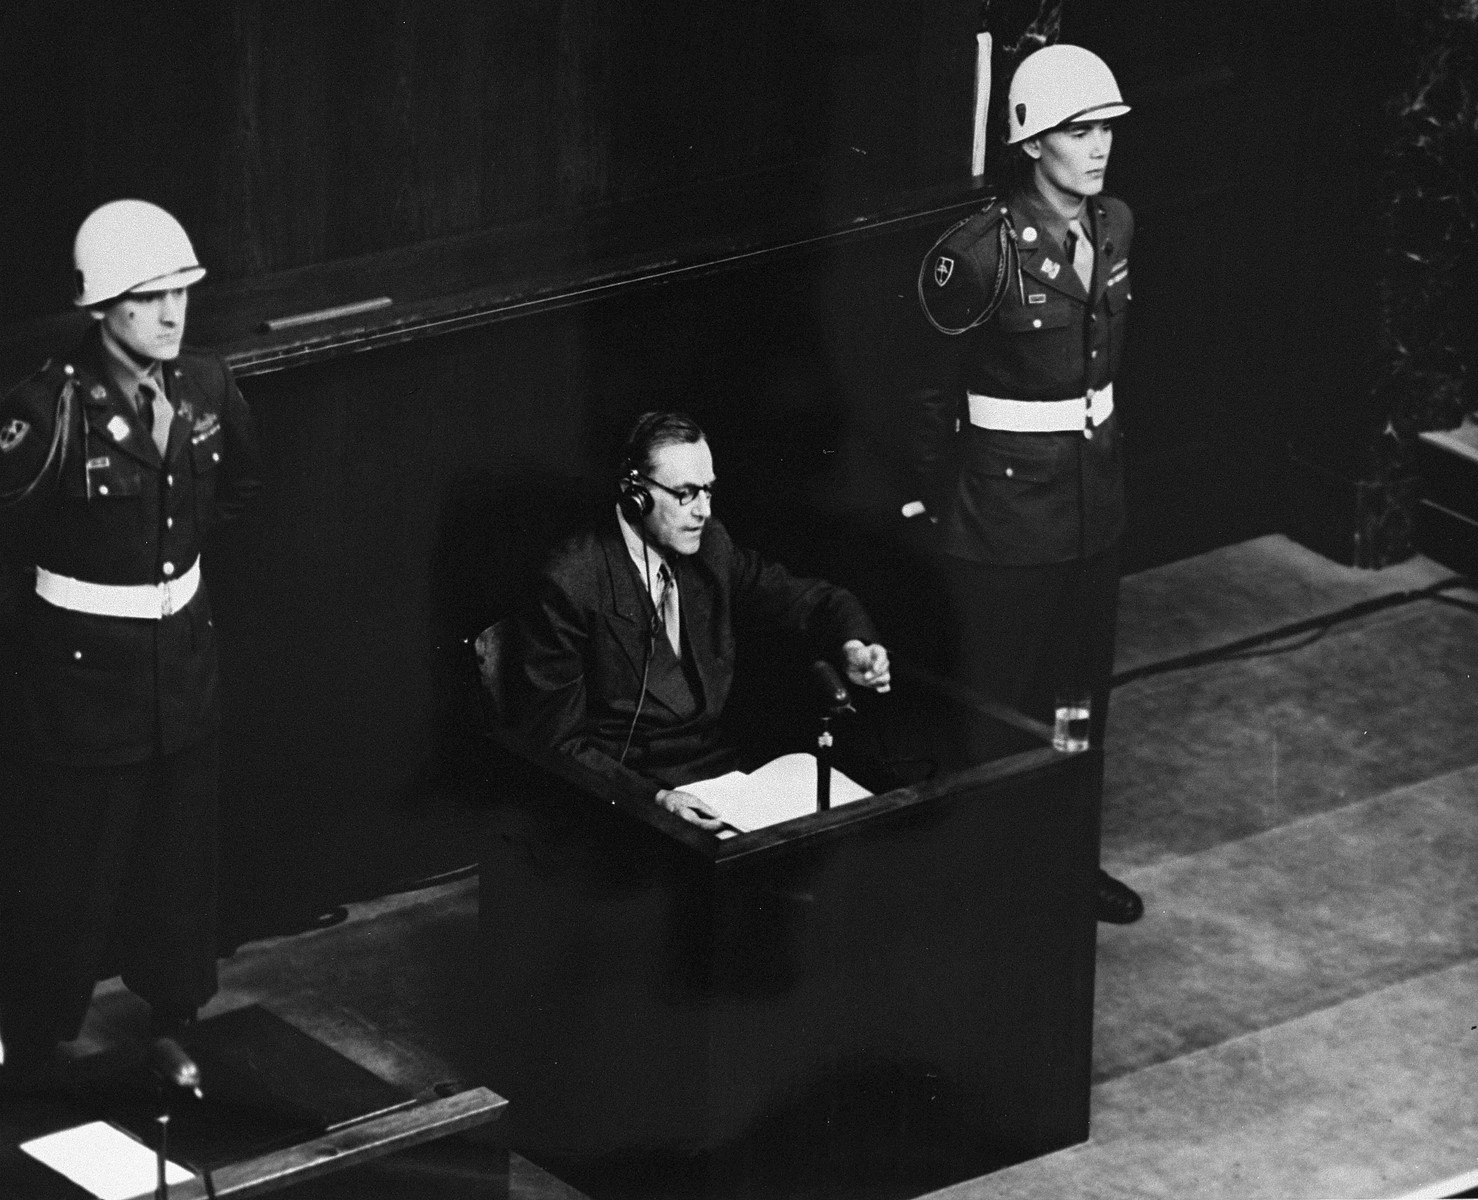 A witness testifies at the International Military Tribunal trial of war criminals at Nuremberg.